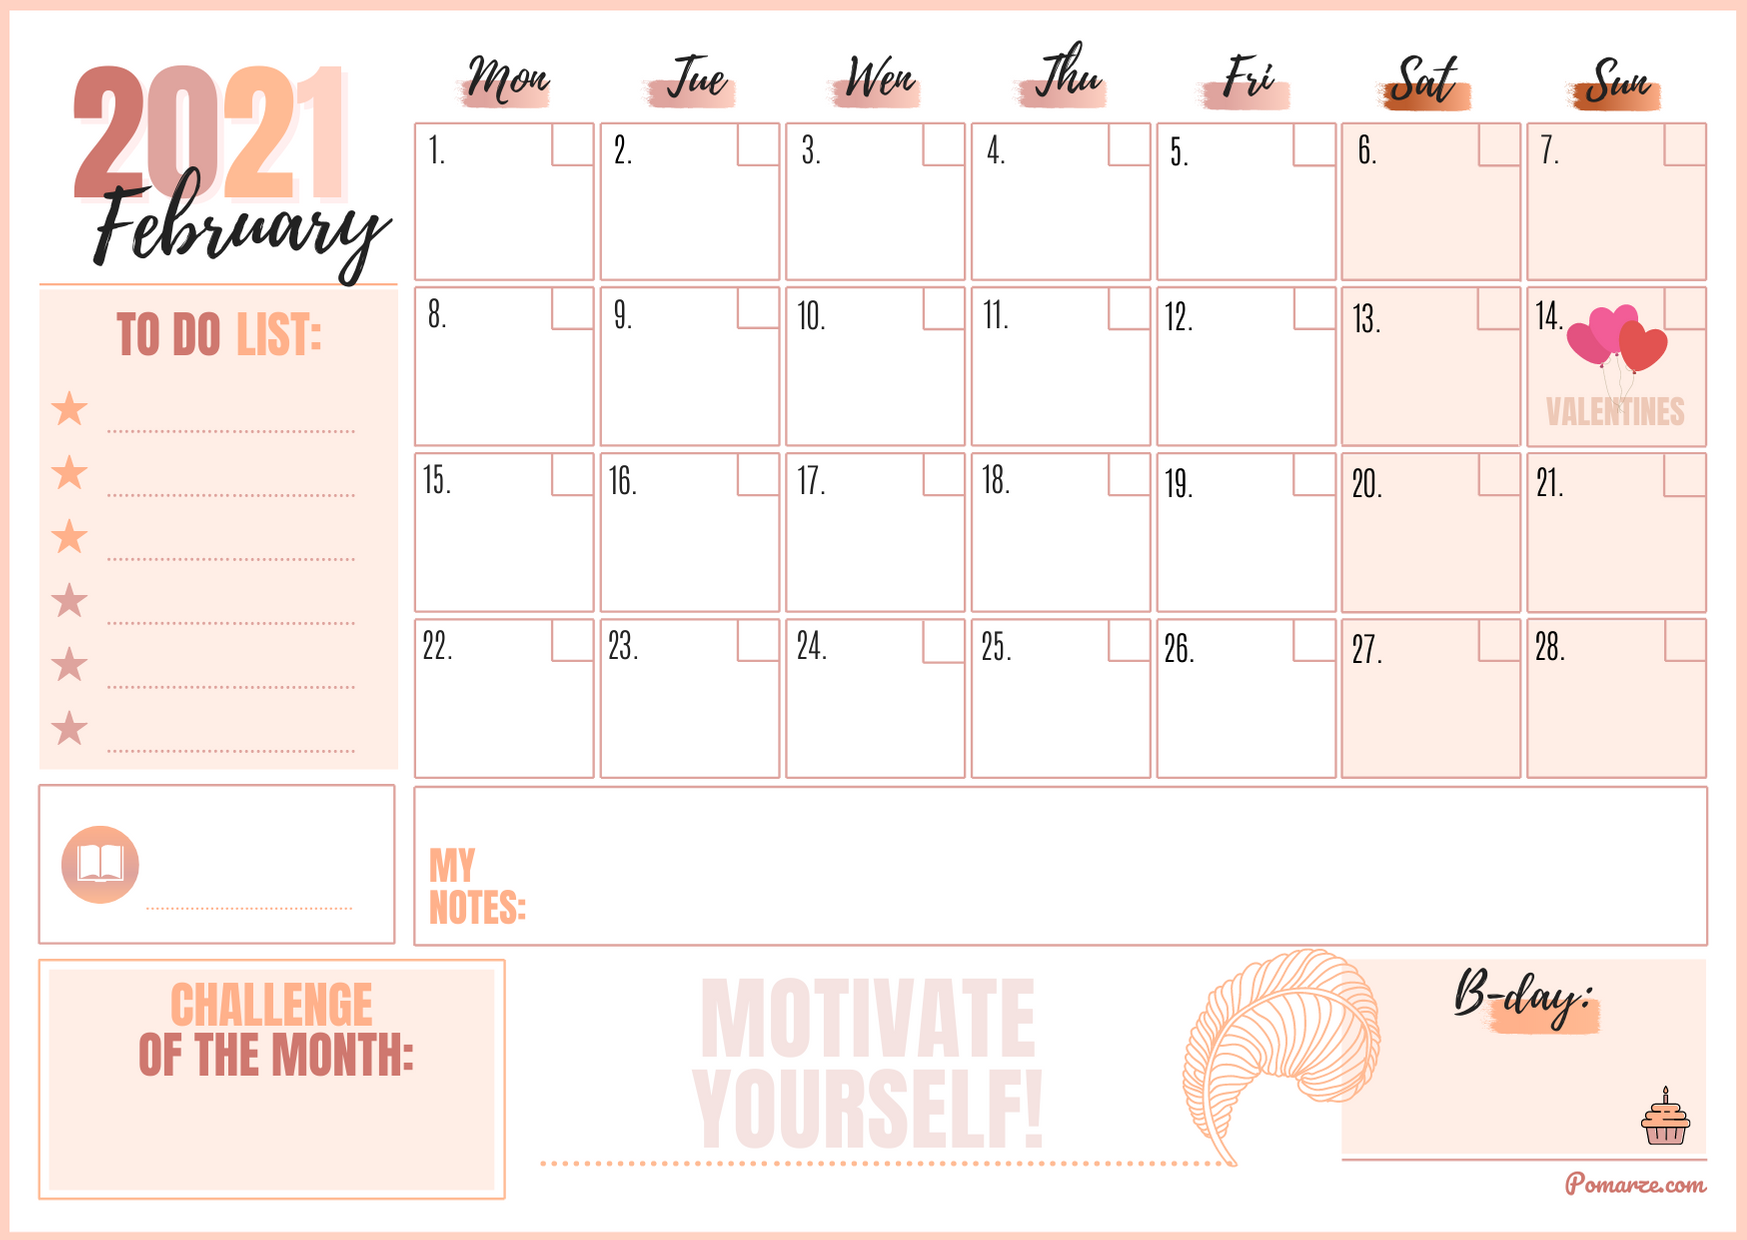 Monthly calendar planner February 2021 pink notes